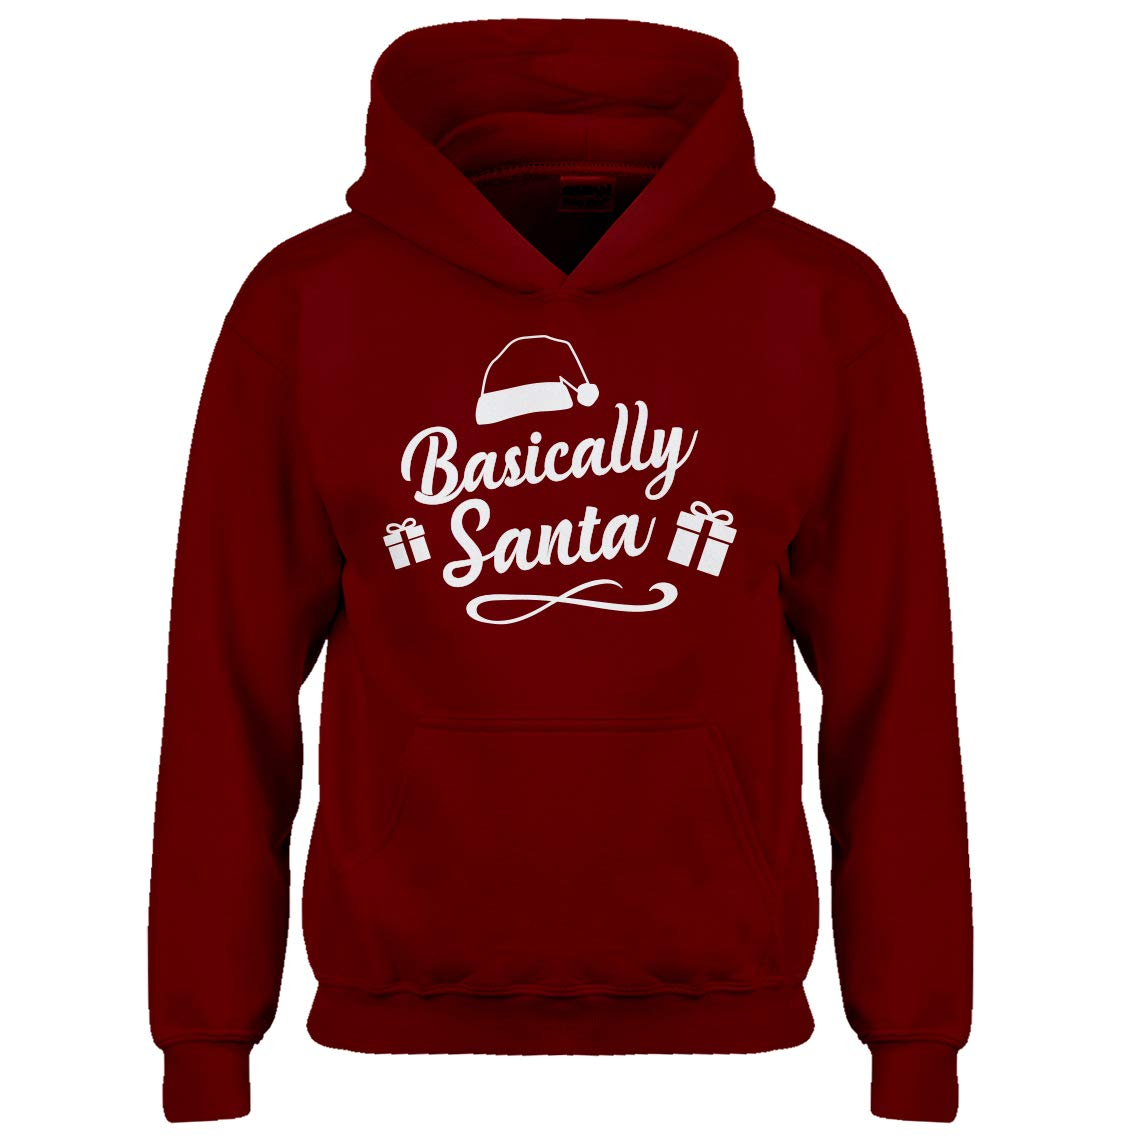 Indica Plateau Basically Santa Hoodie for Kids